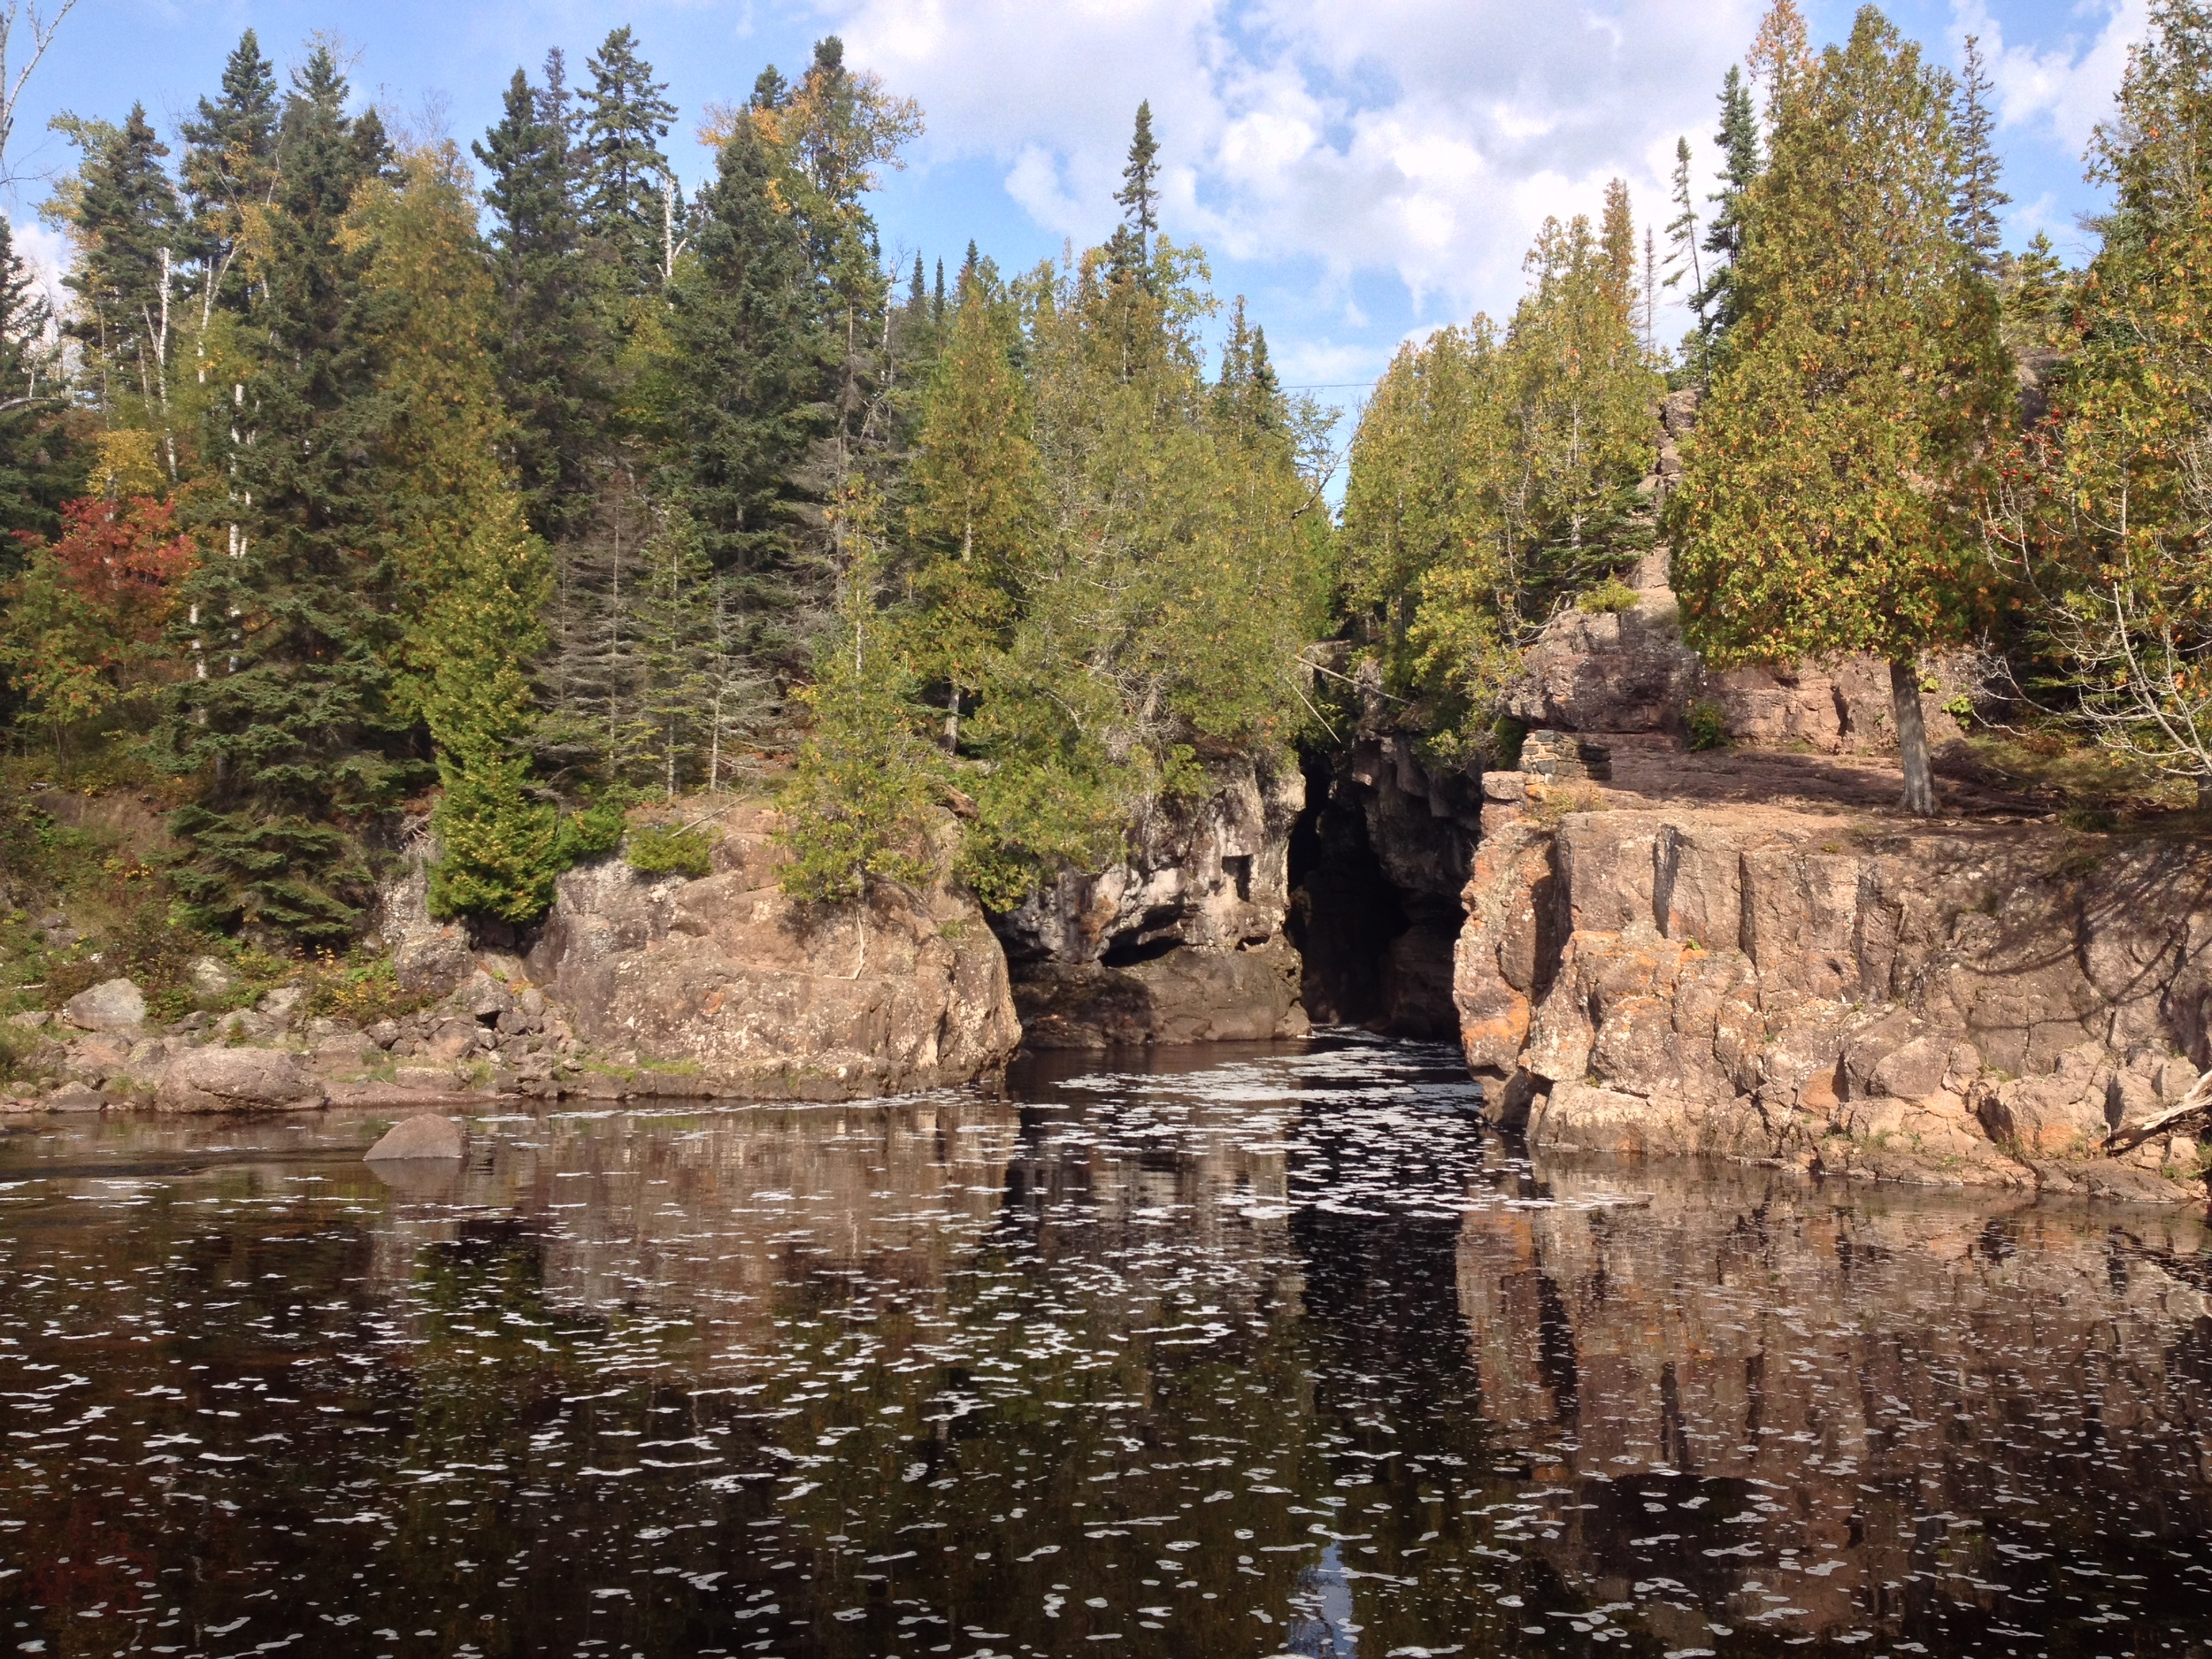 Cliff Jumping at Temperance River State Park